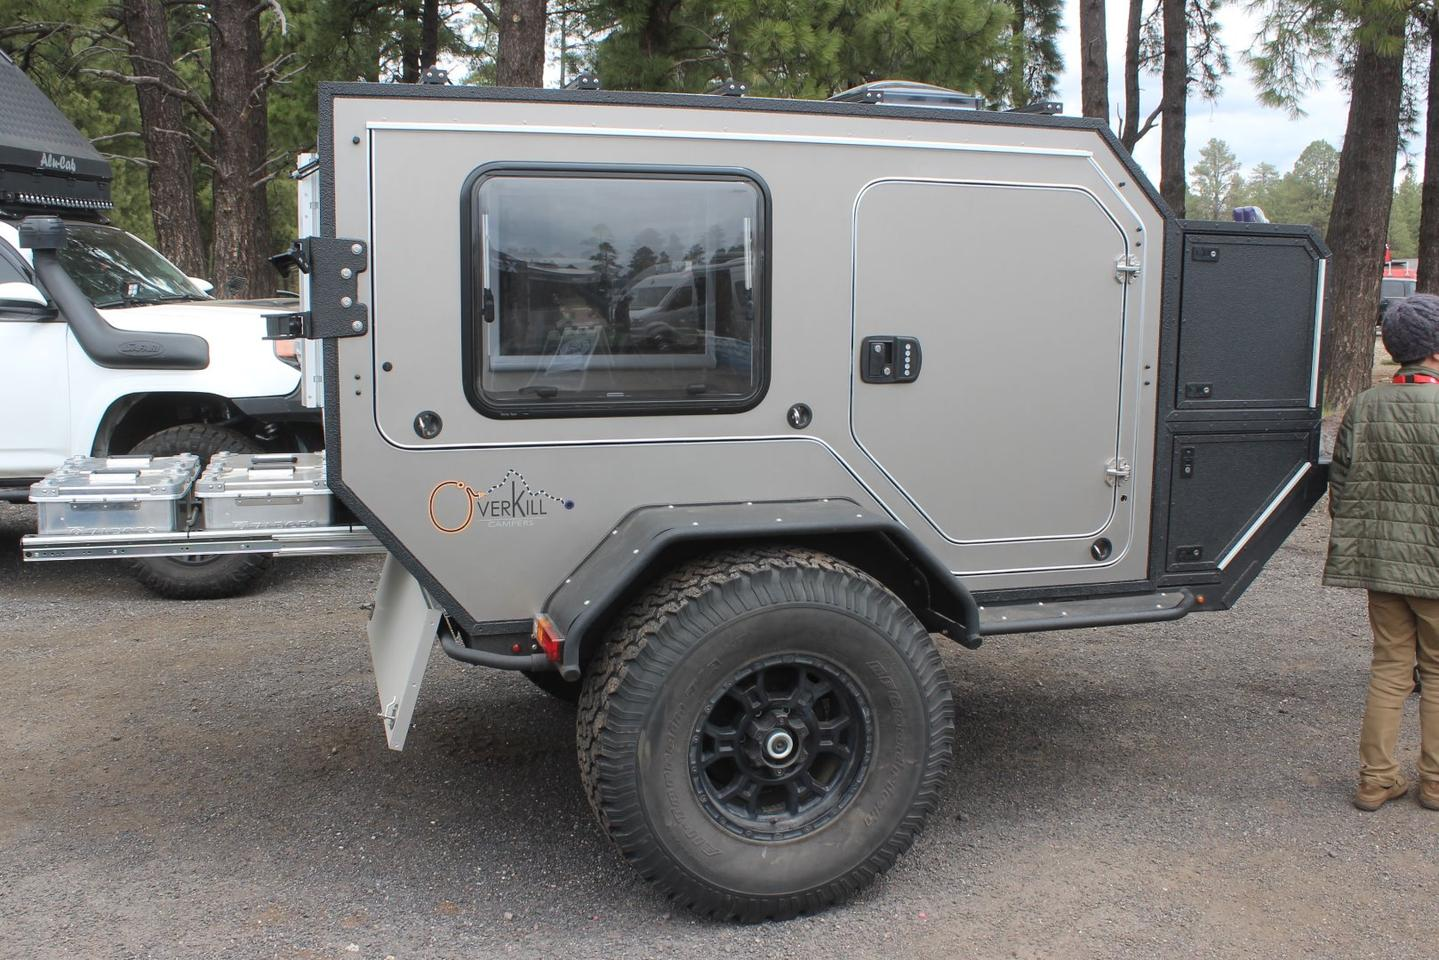 The Overkill T.K.4.7 is a compact, little squaredrop trailer that opens up to create a scenic campsite